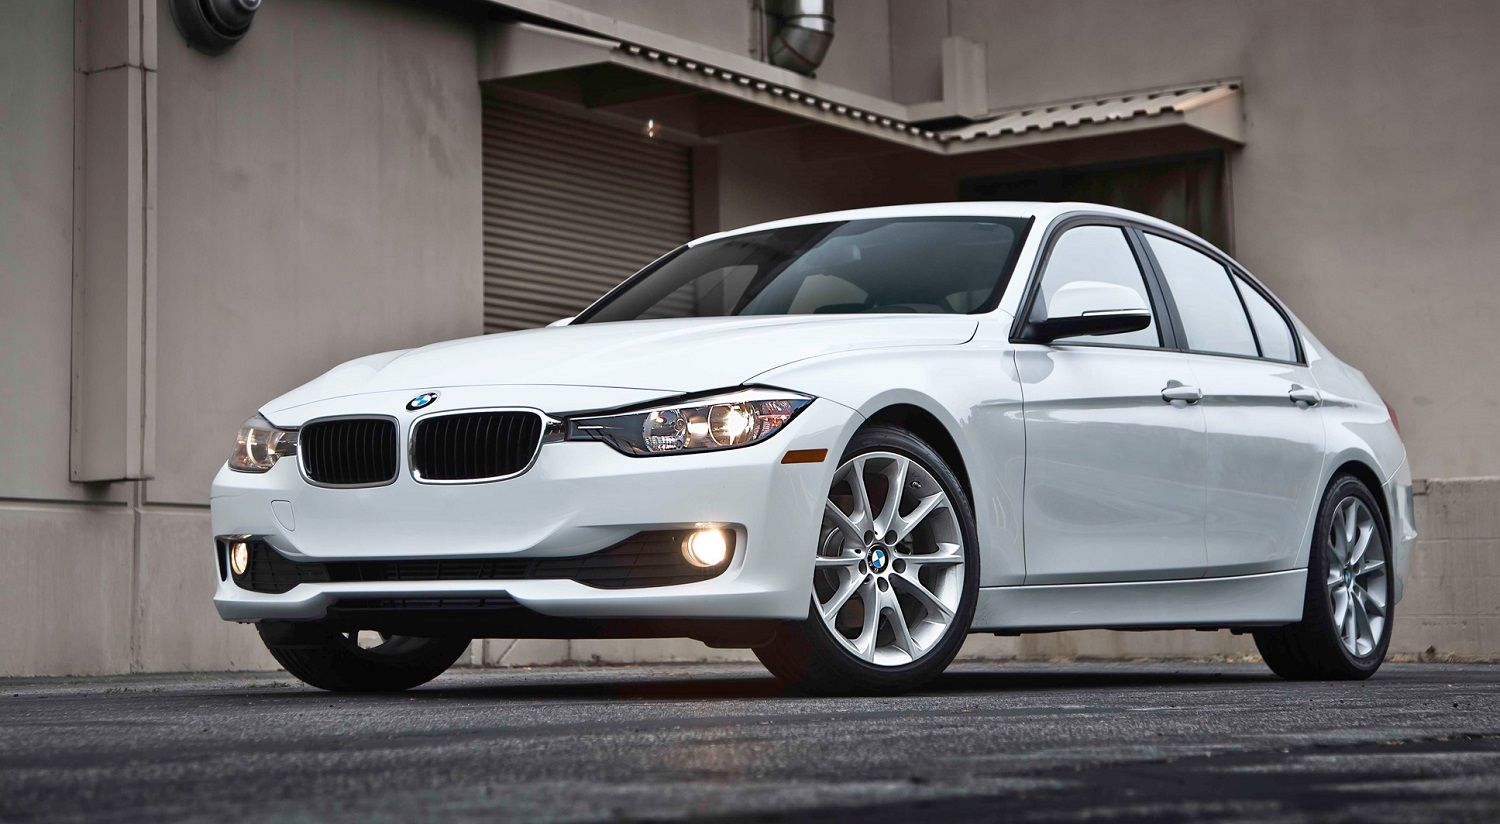 Great Prices On BMW 320i Sports Cars For Sale #BMW320i ...